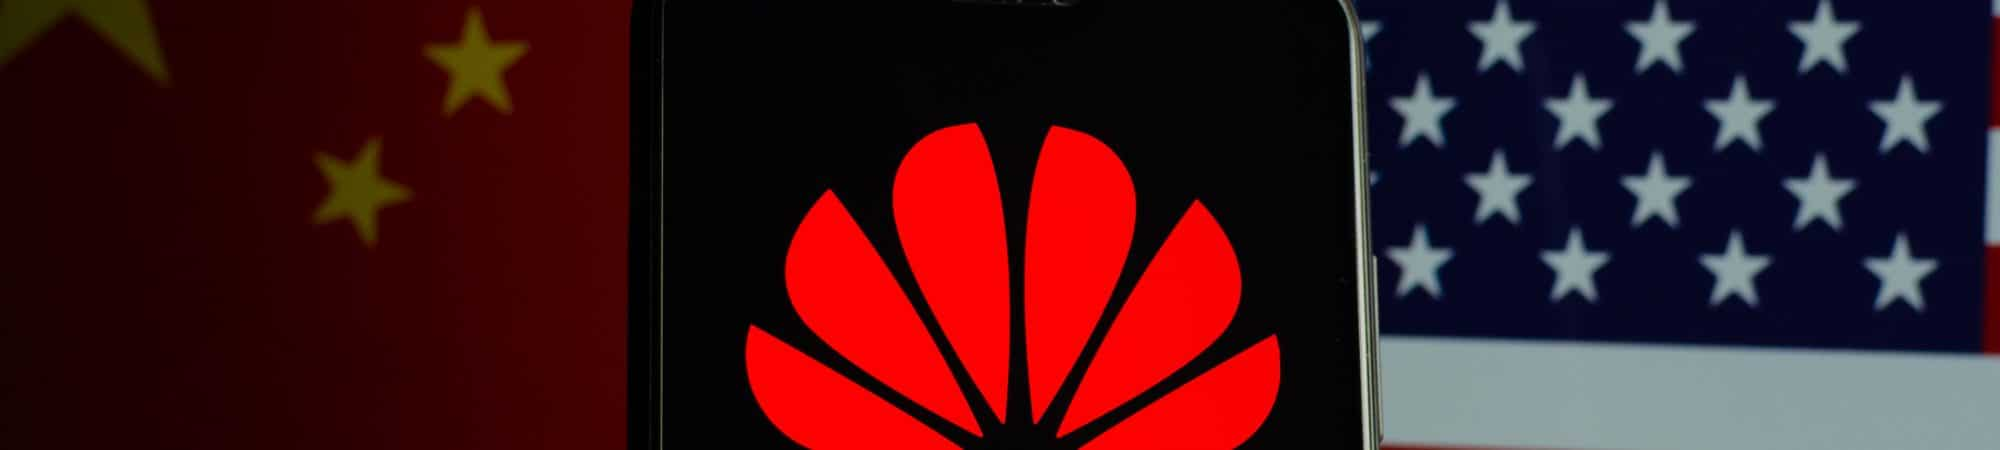 Huawei logo displayed on smartphone and flags of China and the United States in the background